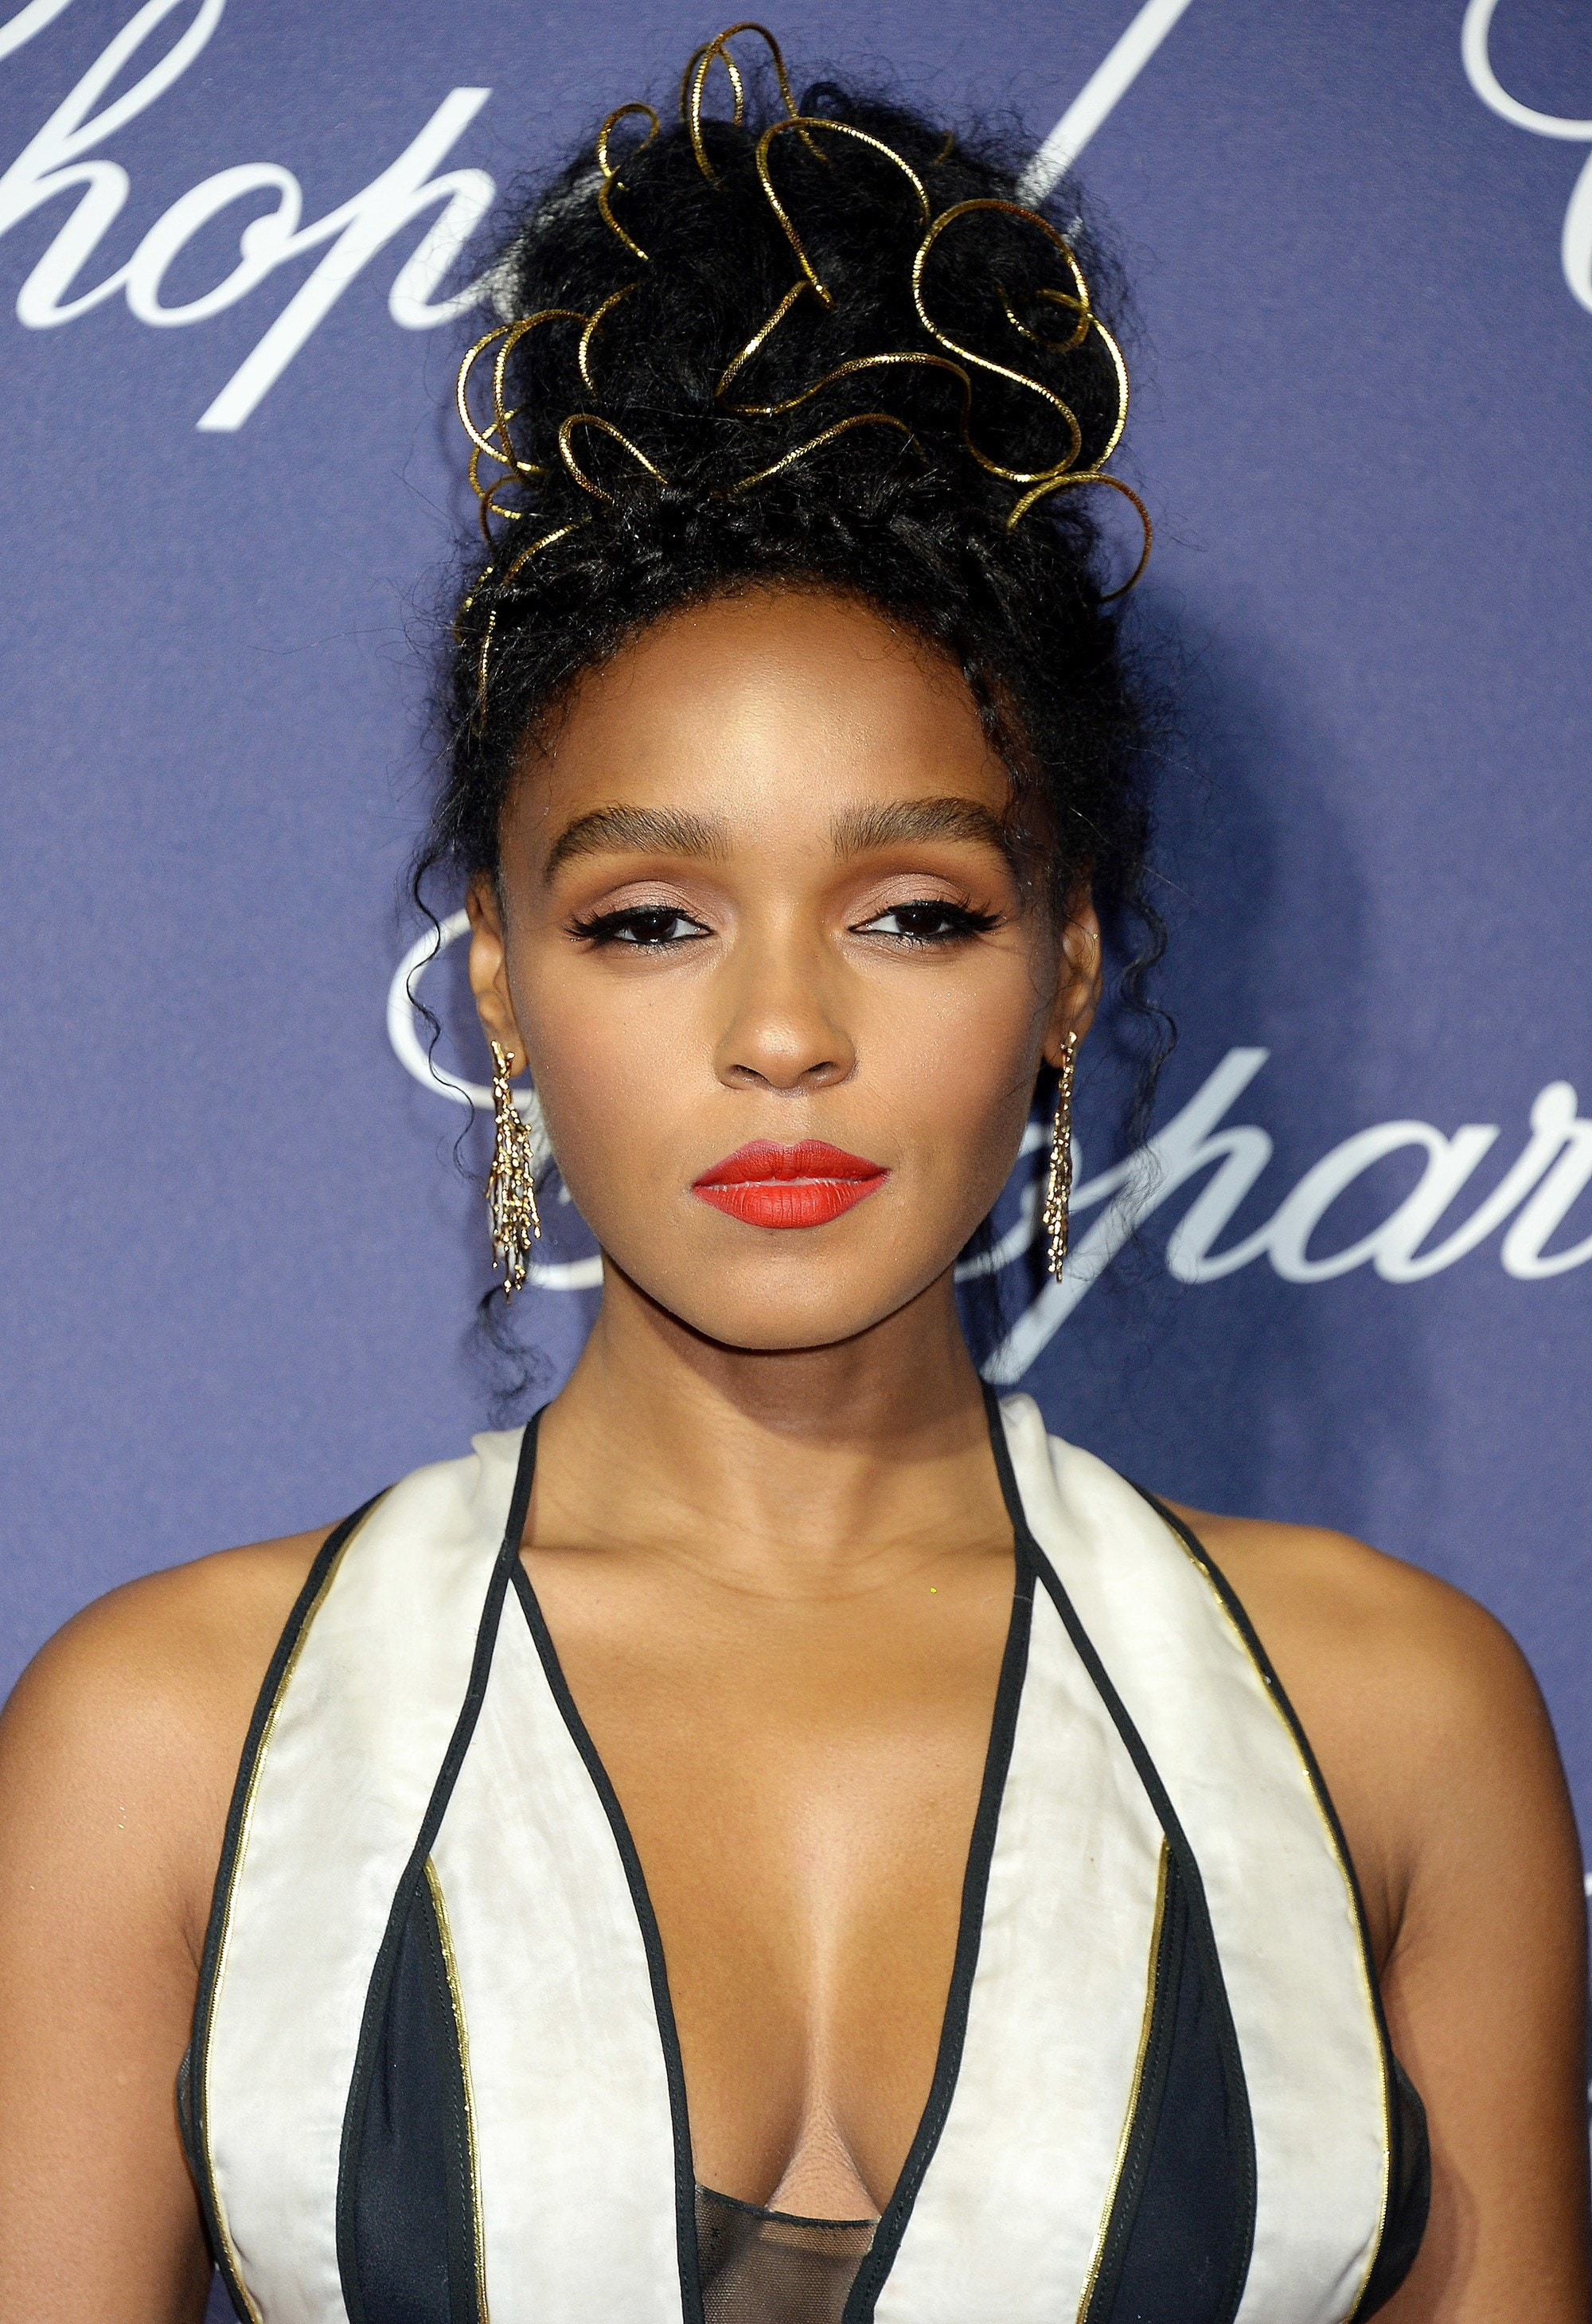 greek hairstyles: close up shot of janelle monae with golden puff hairstyle at palm springs event